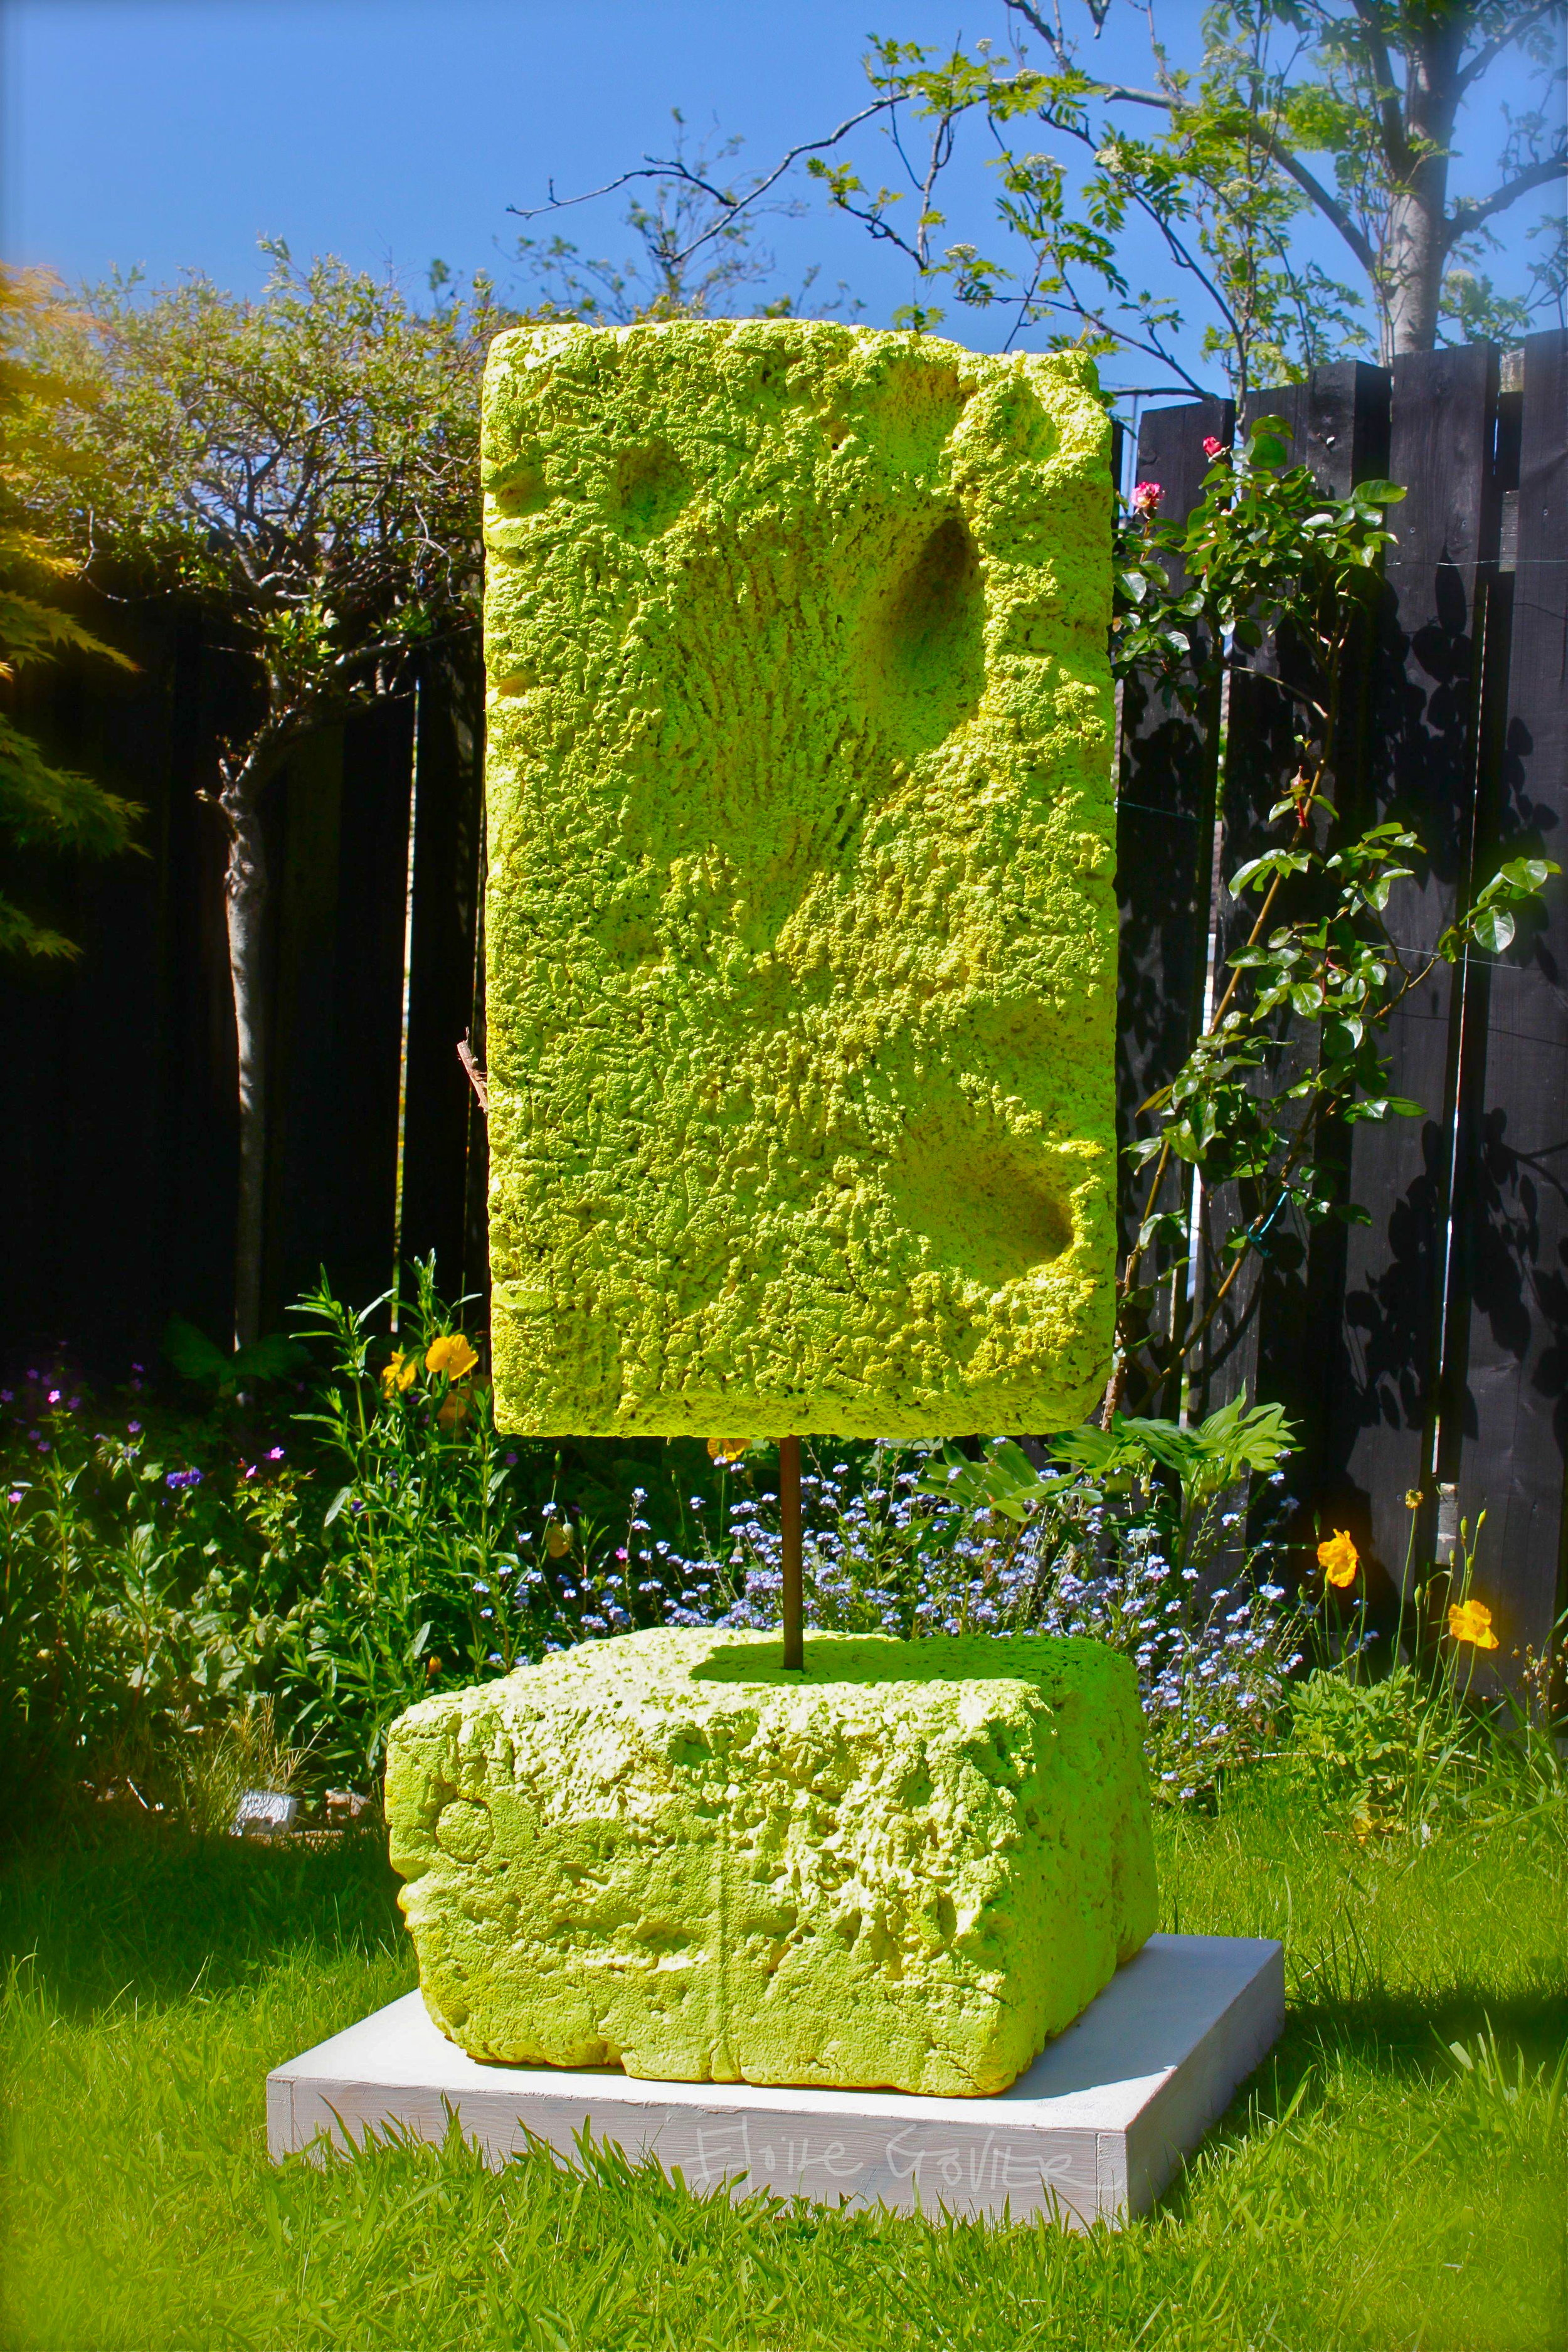 Trajectory Three - Sculpture'Trajectory Three' (Govier, 2015) was made from found polystyrene (riverine/marine litter) retrieved from the River Avon tidal floodplain at Shirehampton, downstream from Bristol, by environmental historian Dr Jill Payne from 'The Power and the Water' Project.Govier reconfigured the polystyrene as a sculpture that marks the material's third 'trajectory' (from packaging to waste to art). At the Festival of Nature, Bristol, 'Trajectory Three' encouraged young people of school-age to think about the long-term place of non-biodegradable plastic litter and waste in the environment. Prompted by the piece,researchers asked:What will found objects like this suggest to future generations about today's society?Exhibited: Festival of Nature, Bristol 2015.13.6.15-14.6.15.